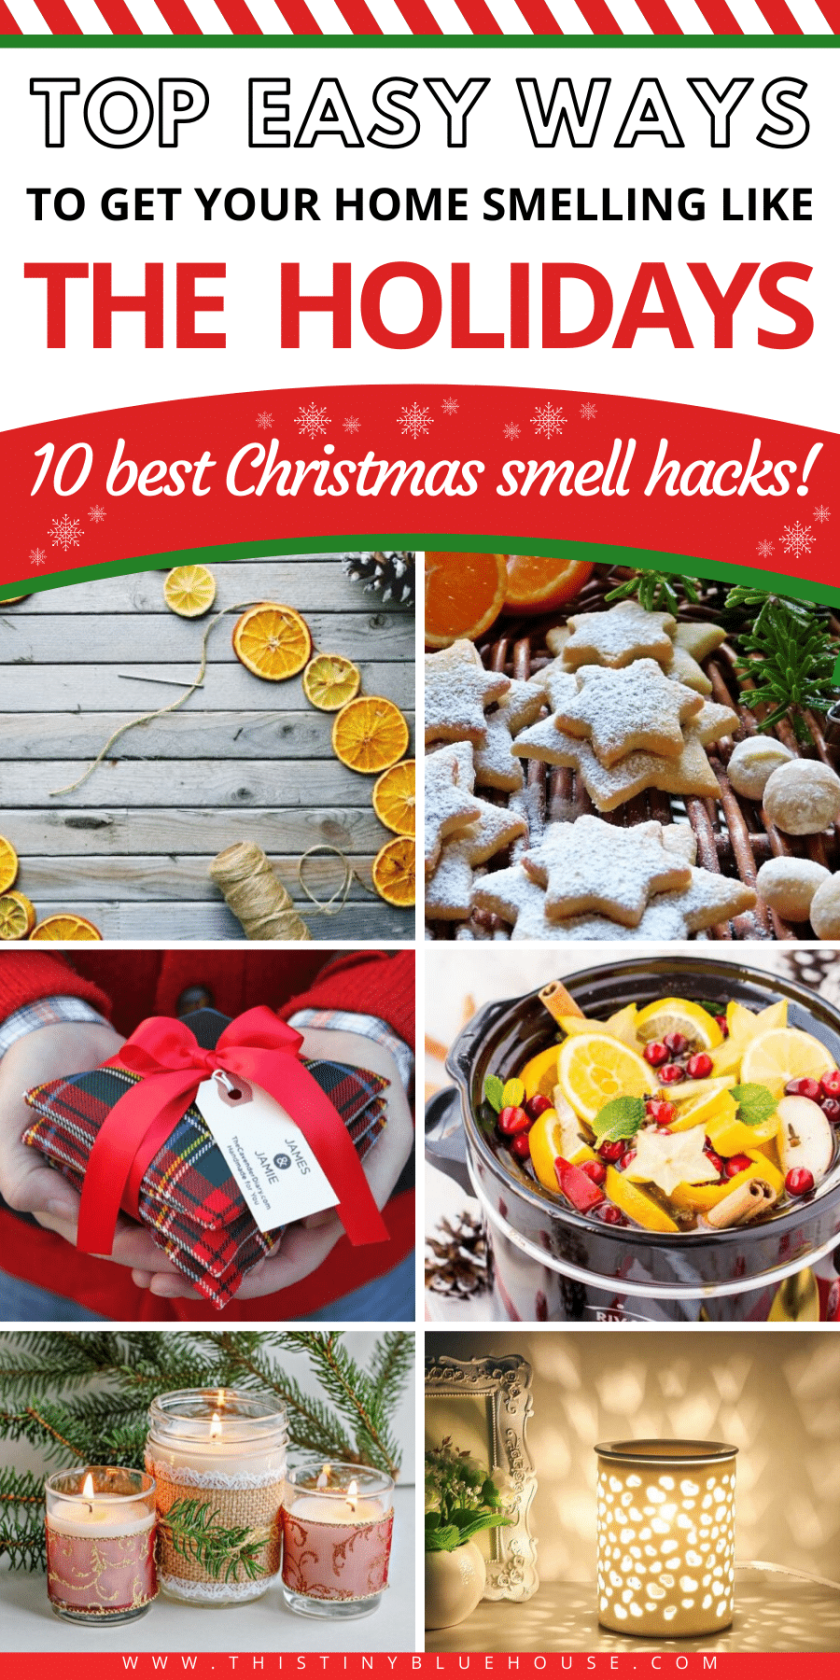 These 10 Genius scent hacks will make your house smell fabulous for the holidays! These 10 ways to make your house smell like Christmas are hands down the easiest and best way to make your house smell amazing and get you into the festive spirit. #smellhacks #smellhacksforhome #smellhacksDIY #smellhackshouses #smellhackshome #smellhackstips #smellhackssimple #scenthacks #scenthackschristmas #smellhackchristmas #easyscenthacks #simplescenthacks #waystomakehousemsellgood #waystomakehousesmellgooddiy #waystomakehousesmellgoodnatural #waystomakehousesmellgoodessentialoils #christmasscents #christmasscenthacks #christmassmellhacks